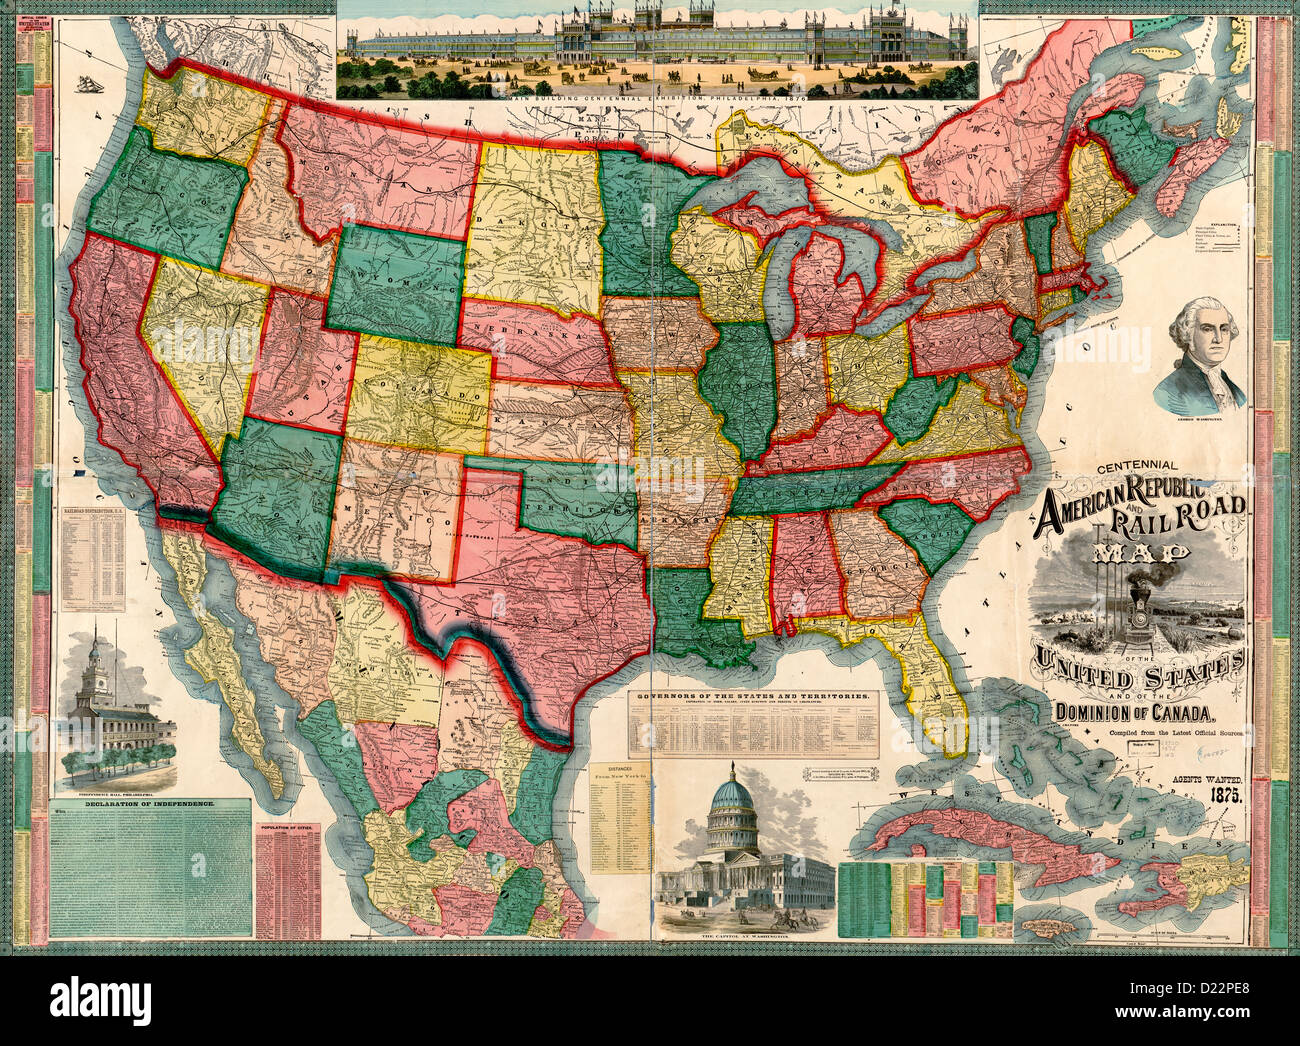 centennial american republic and railroad map of the united states and of the dominion of canada 1876